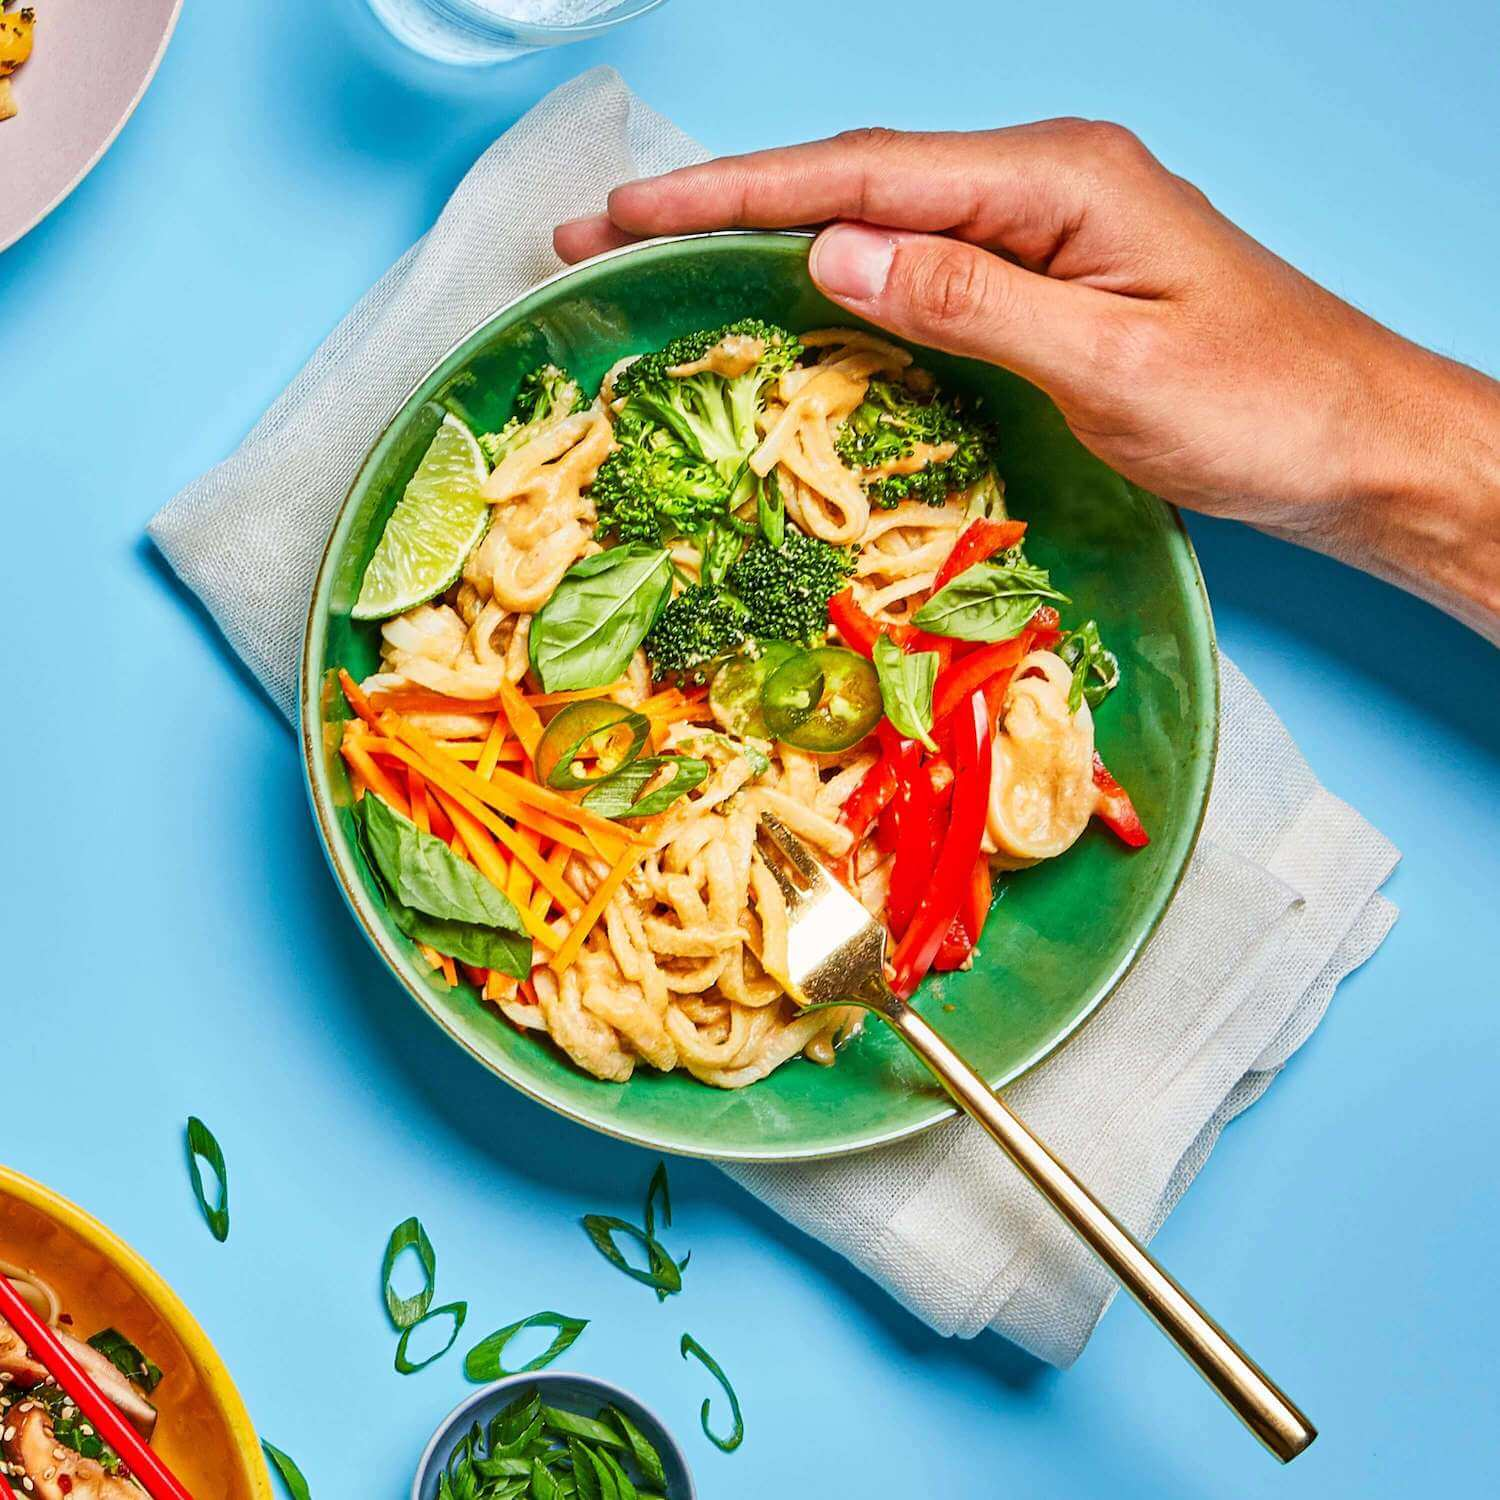 Tangy Ginger Noodles in a dish with a fork in it, on a table with a few other dishes and a napkin.